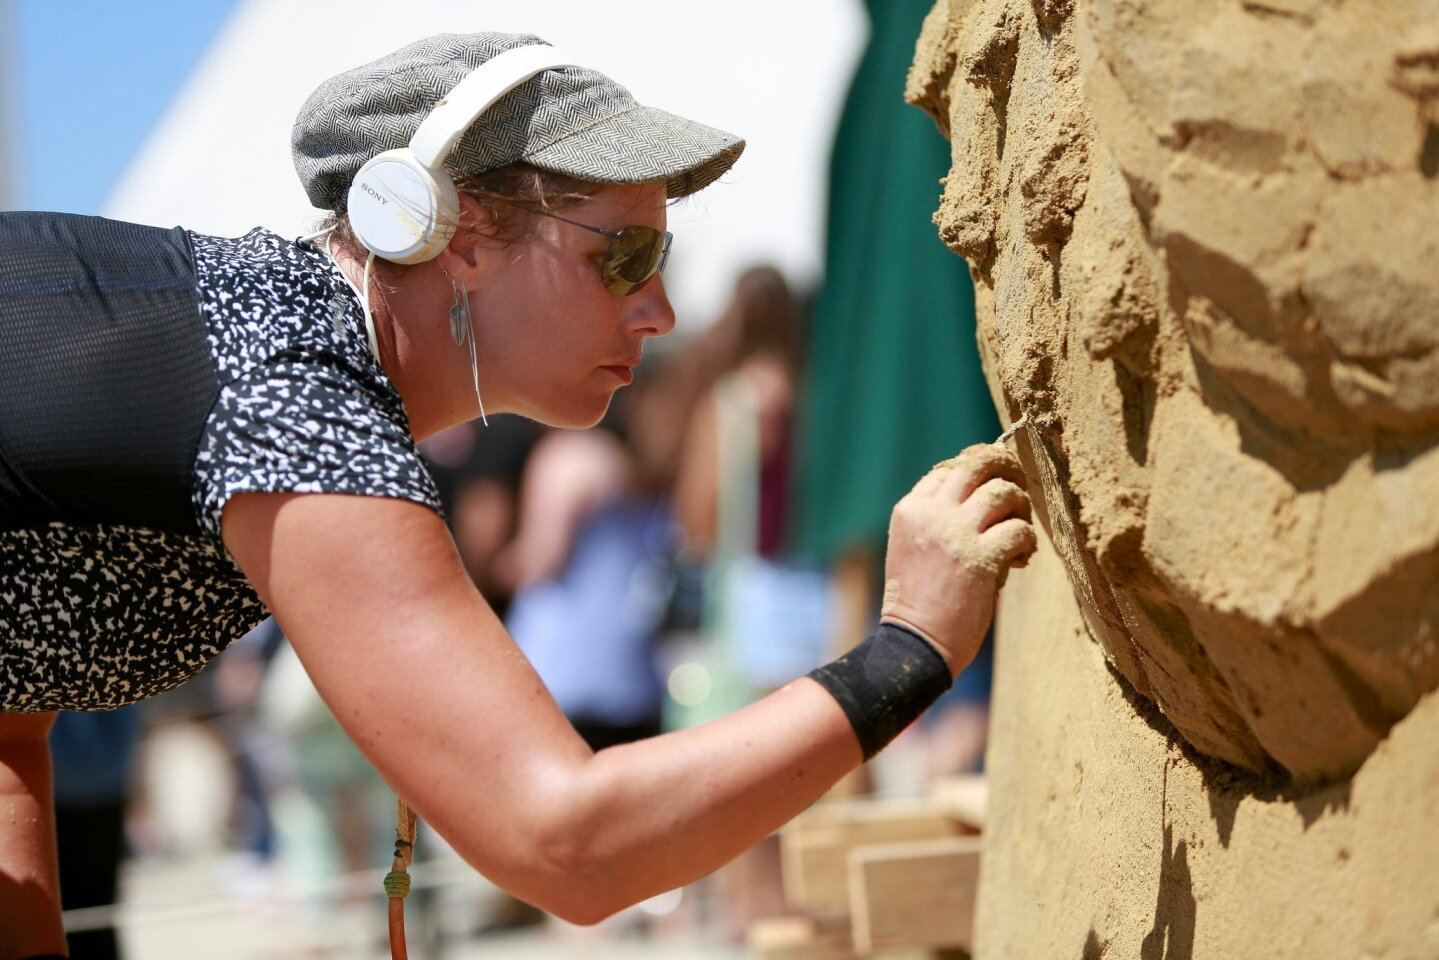 U.S. Sand Sculpting Challenge and Dimensional Art Exposition